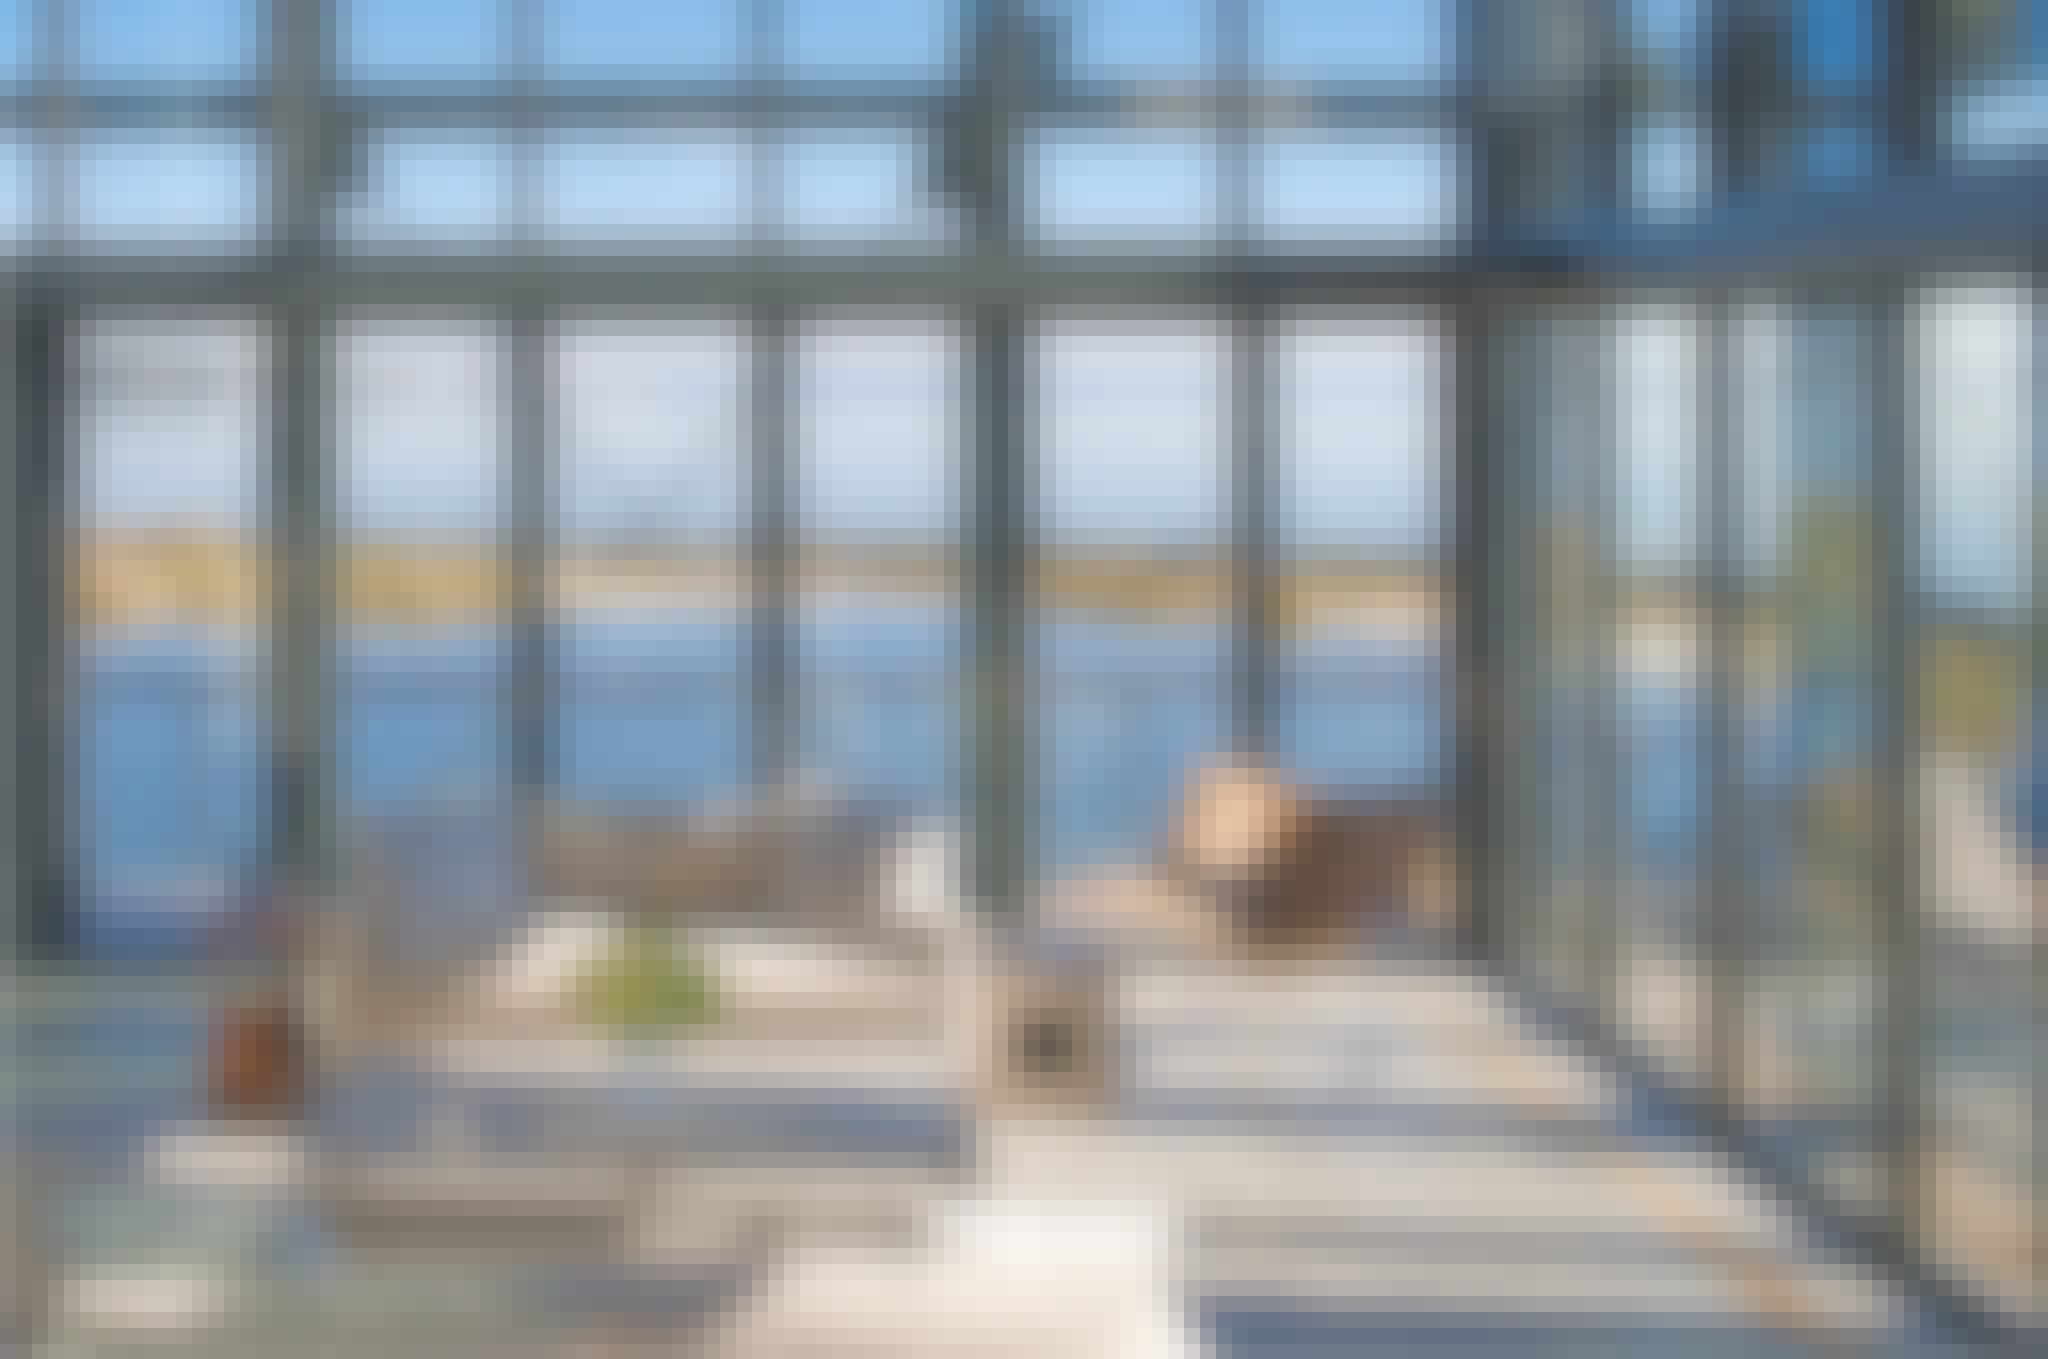 folding glass walls systems in beach house design